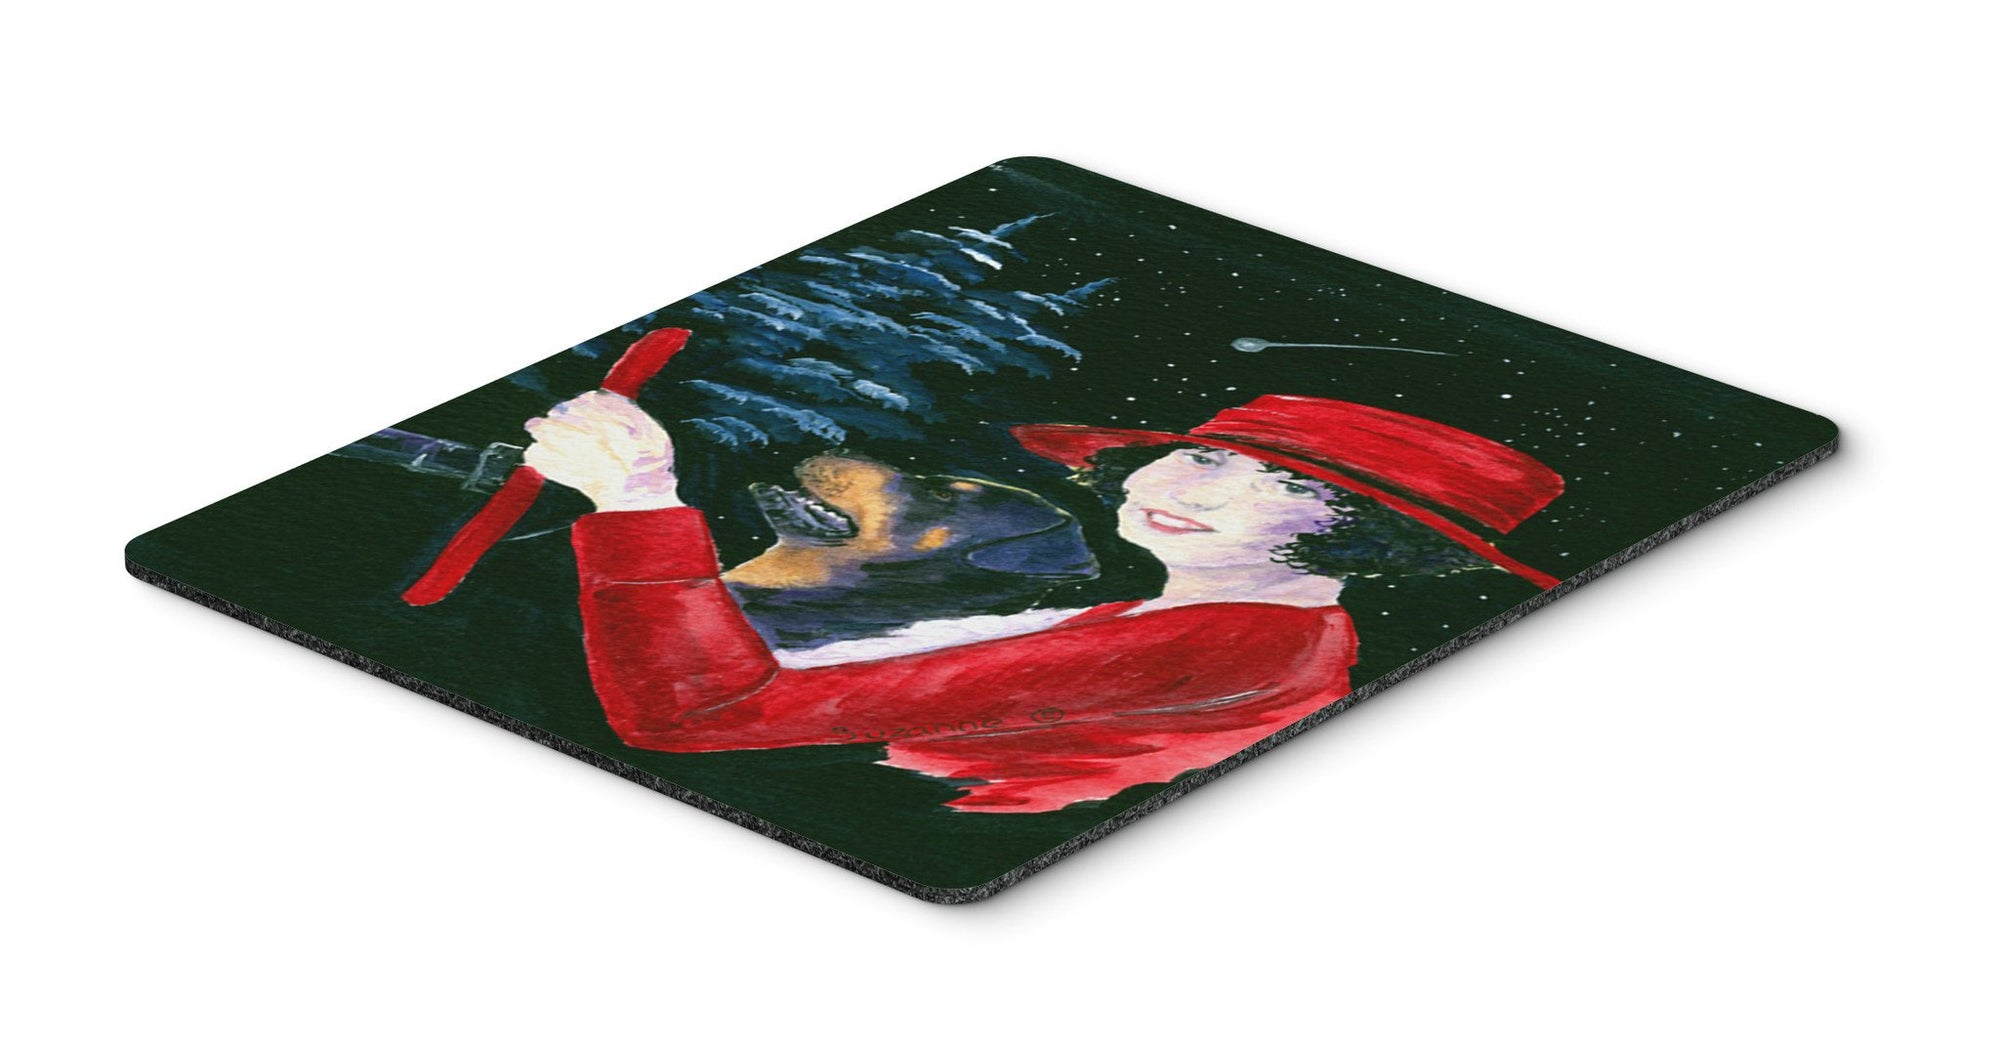 Buy this Lady driving with her Rottweiler Mouse Pad, Hot Pad or Trivet